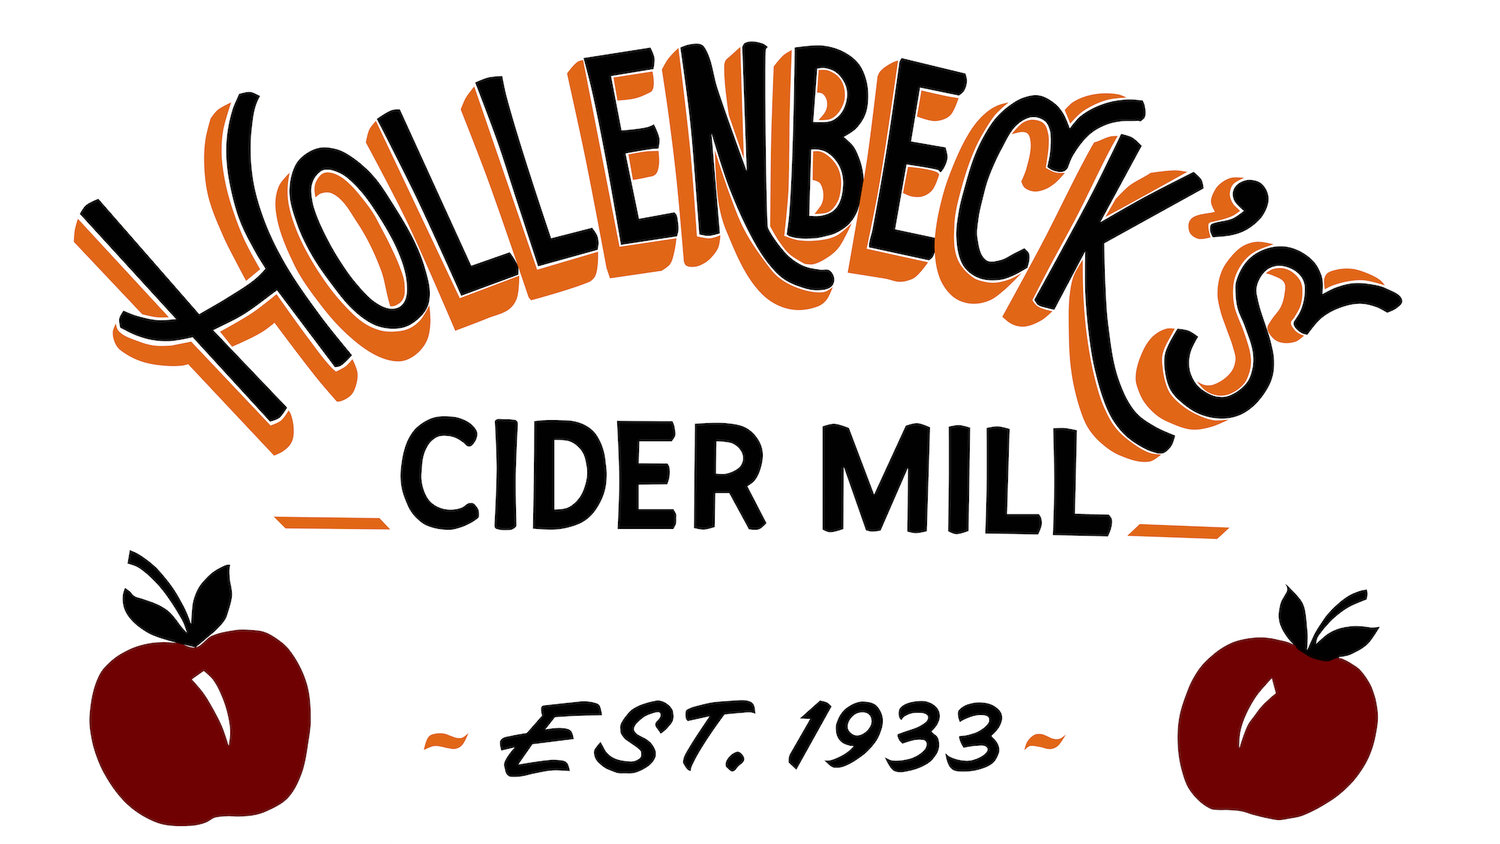 Hollenbeck's Cider Mill